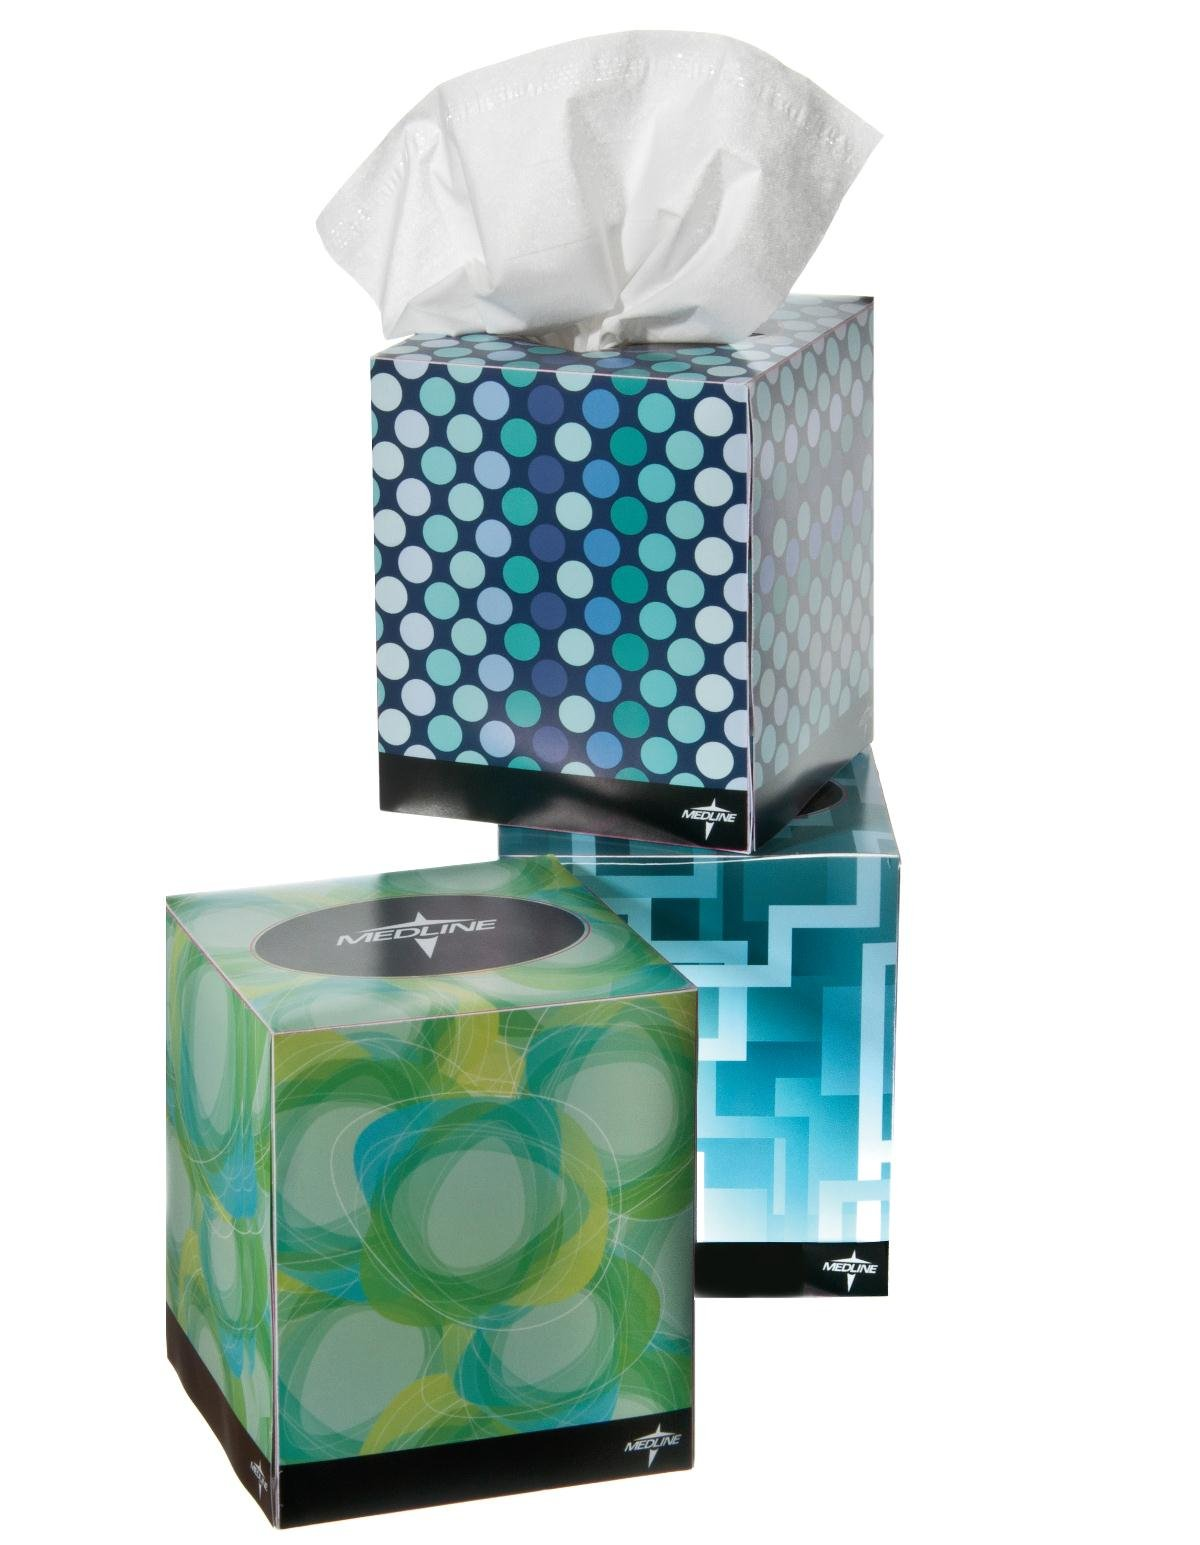 Medline NON245278 Premium Facial Tissues (Pack of 36)